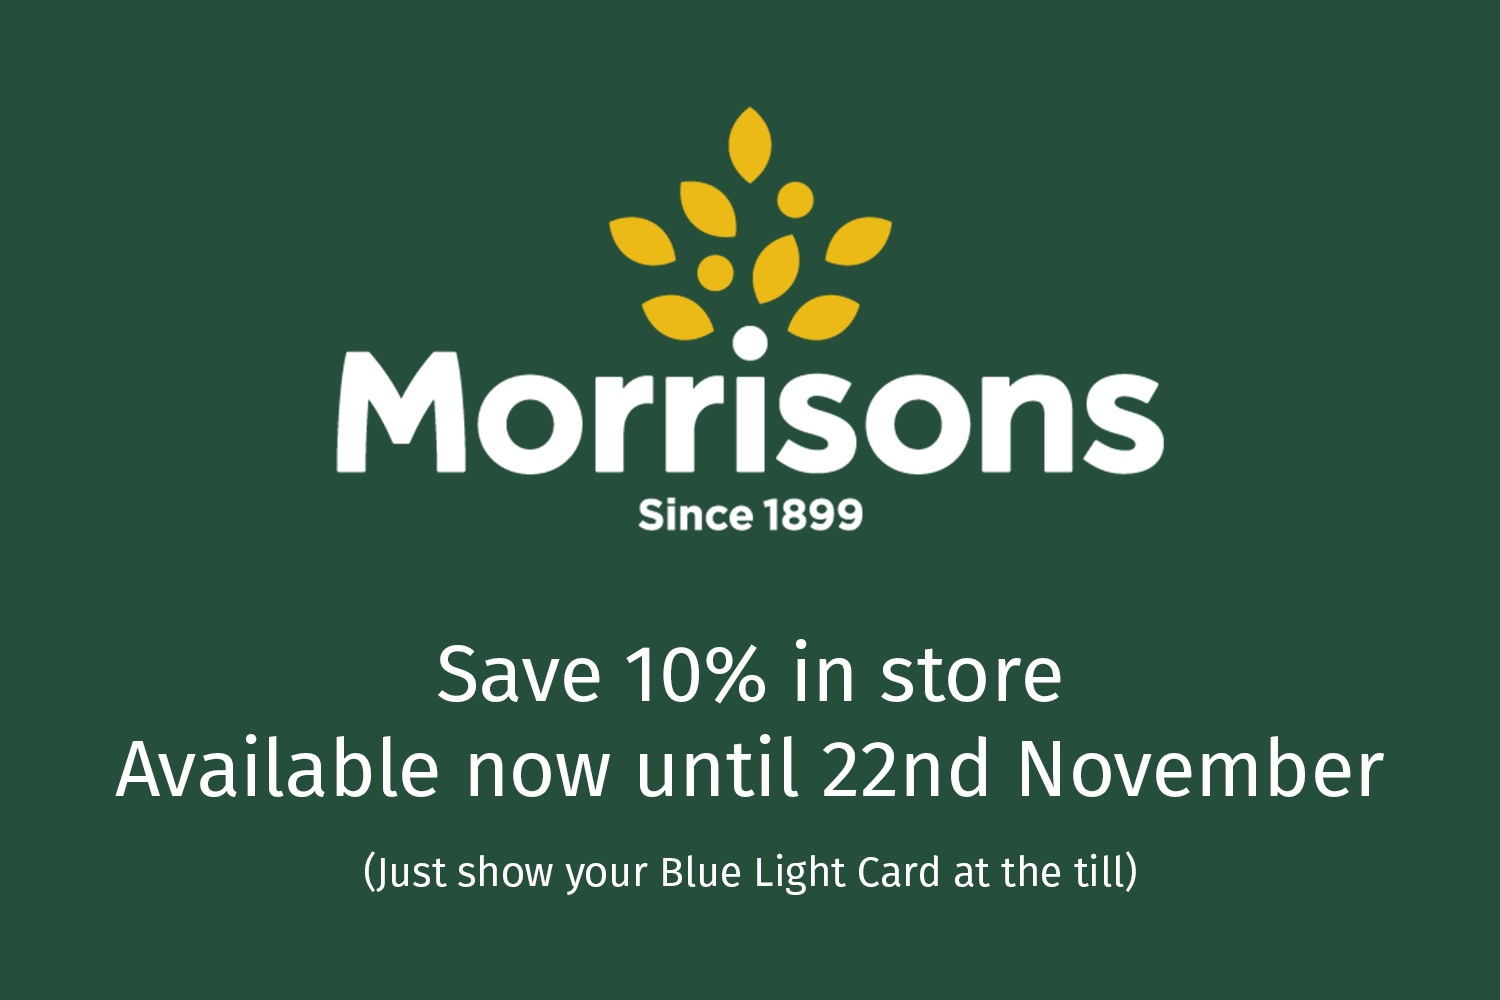 Morrisons discount now available in store